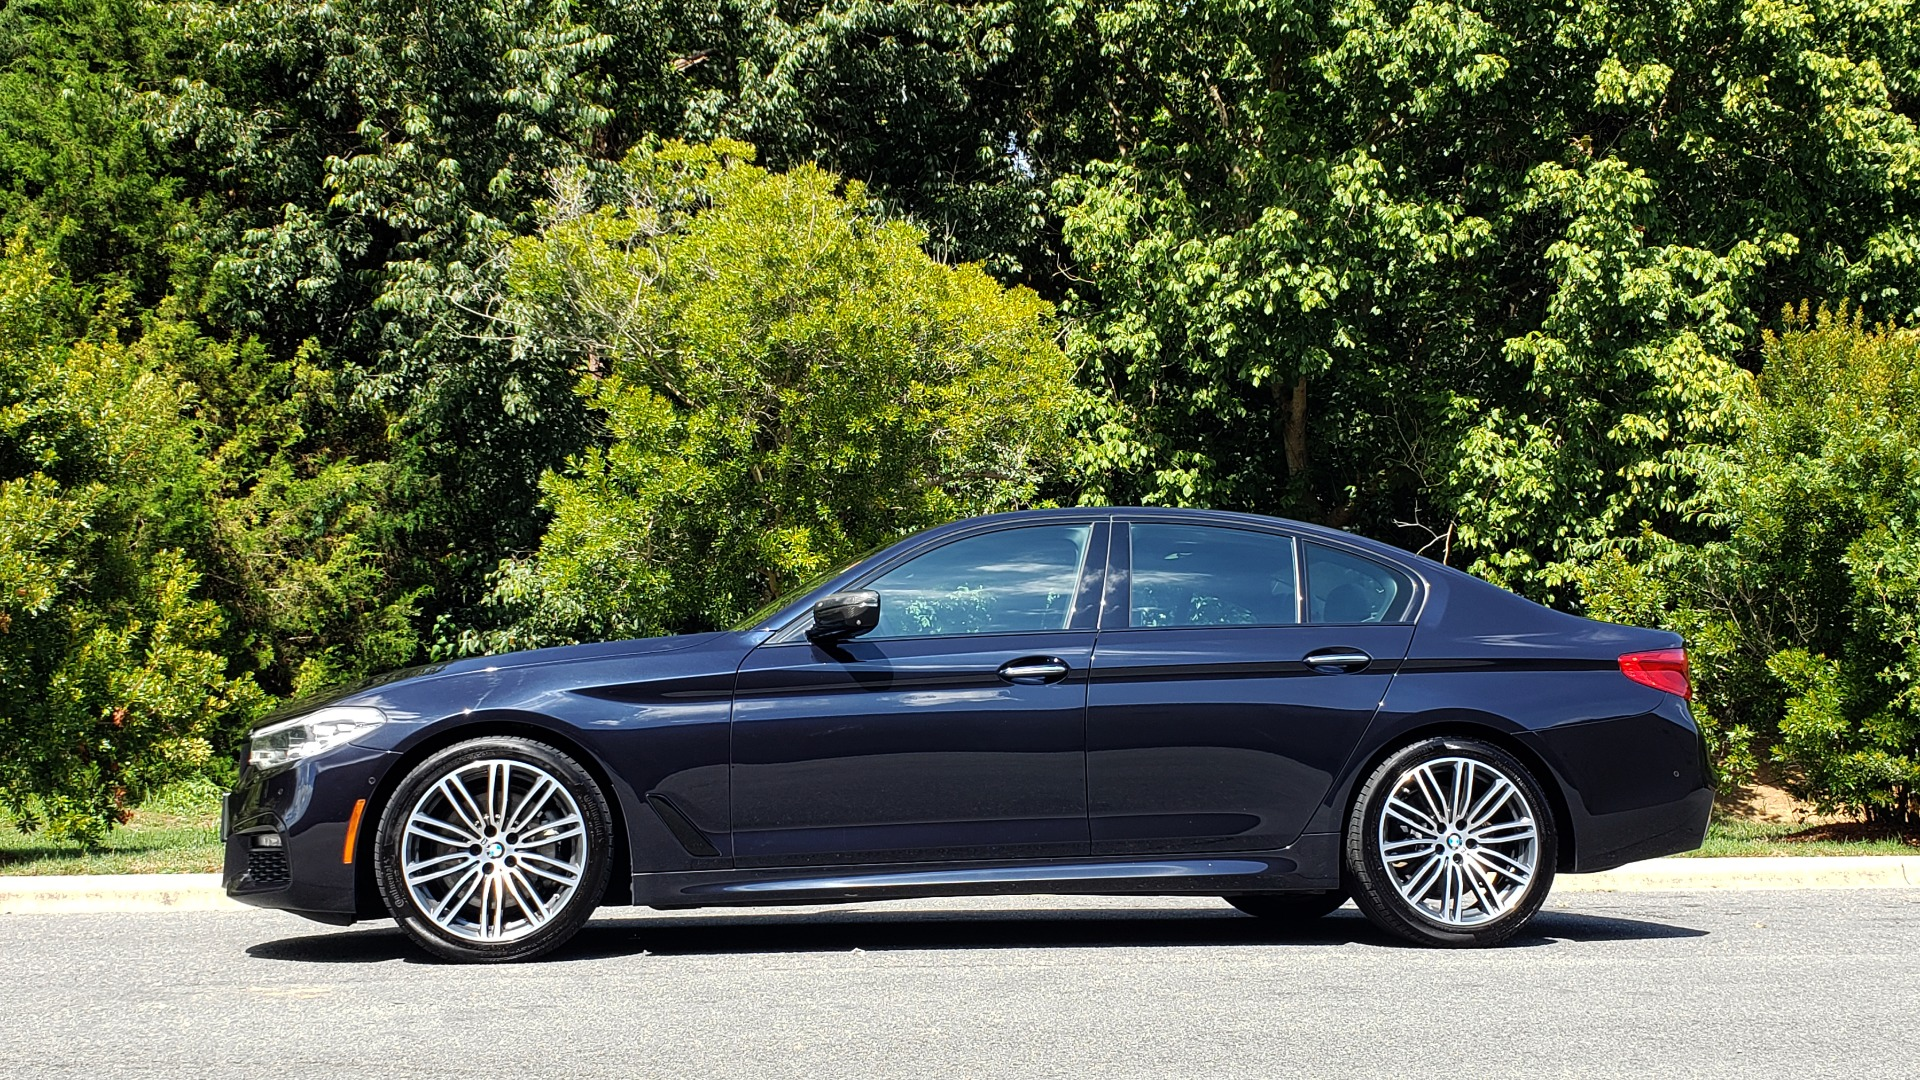 Used 2017 BMW 5 SERIES 540I XDRIVE M-SPORT / PREMIUM / NAV / HUD / SUNROOF / REARVIEW for sale $34,995 at Formula Imports in Charlotte NC 28227 2